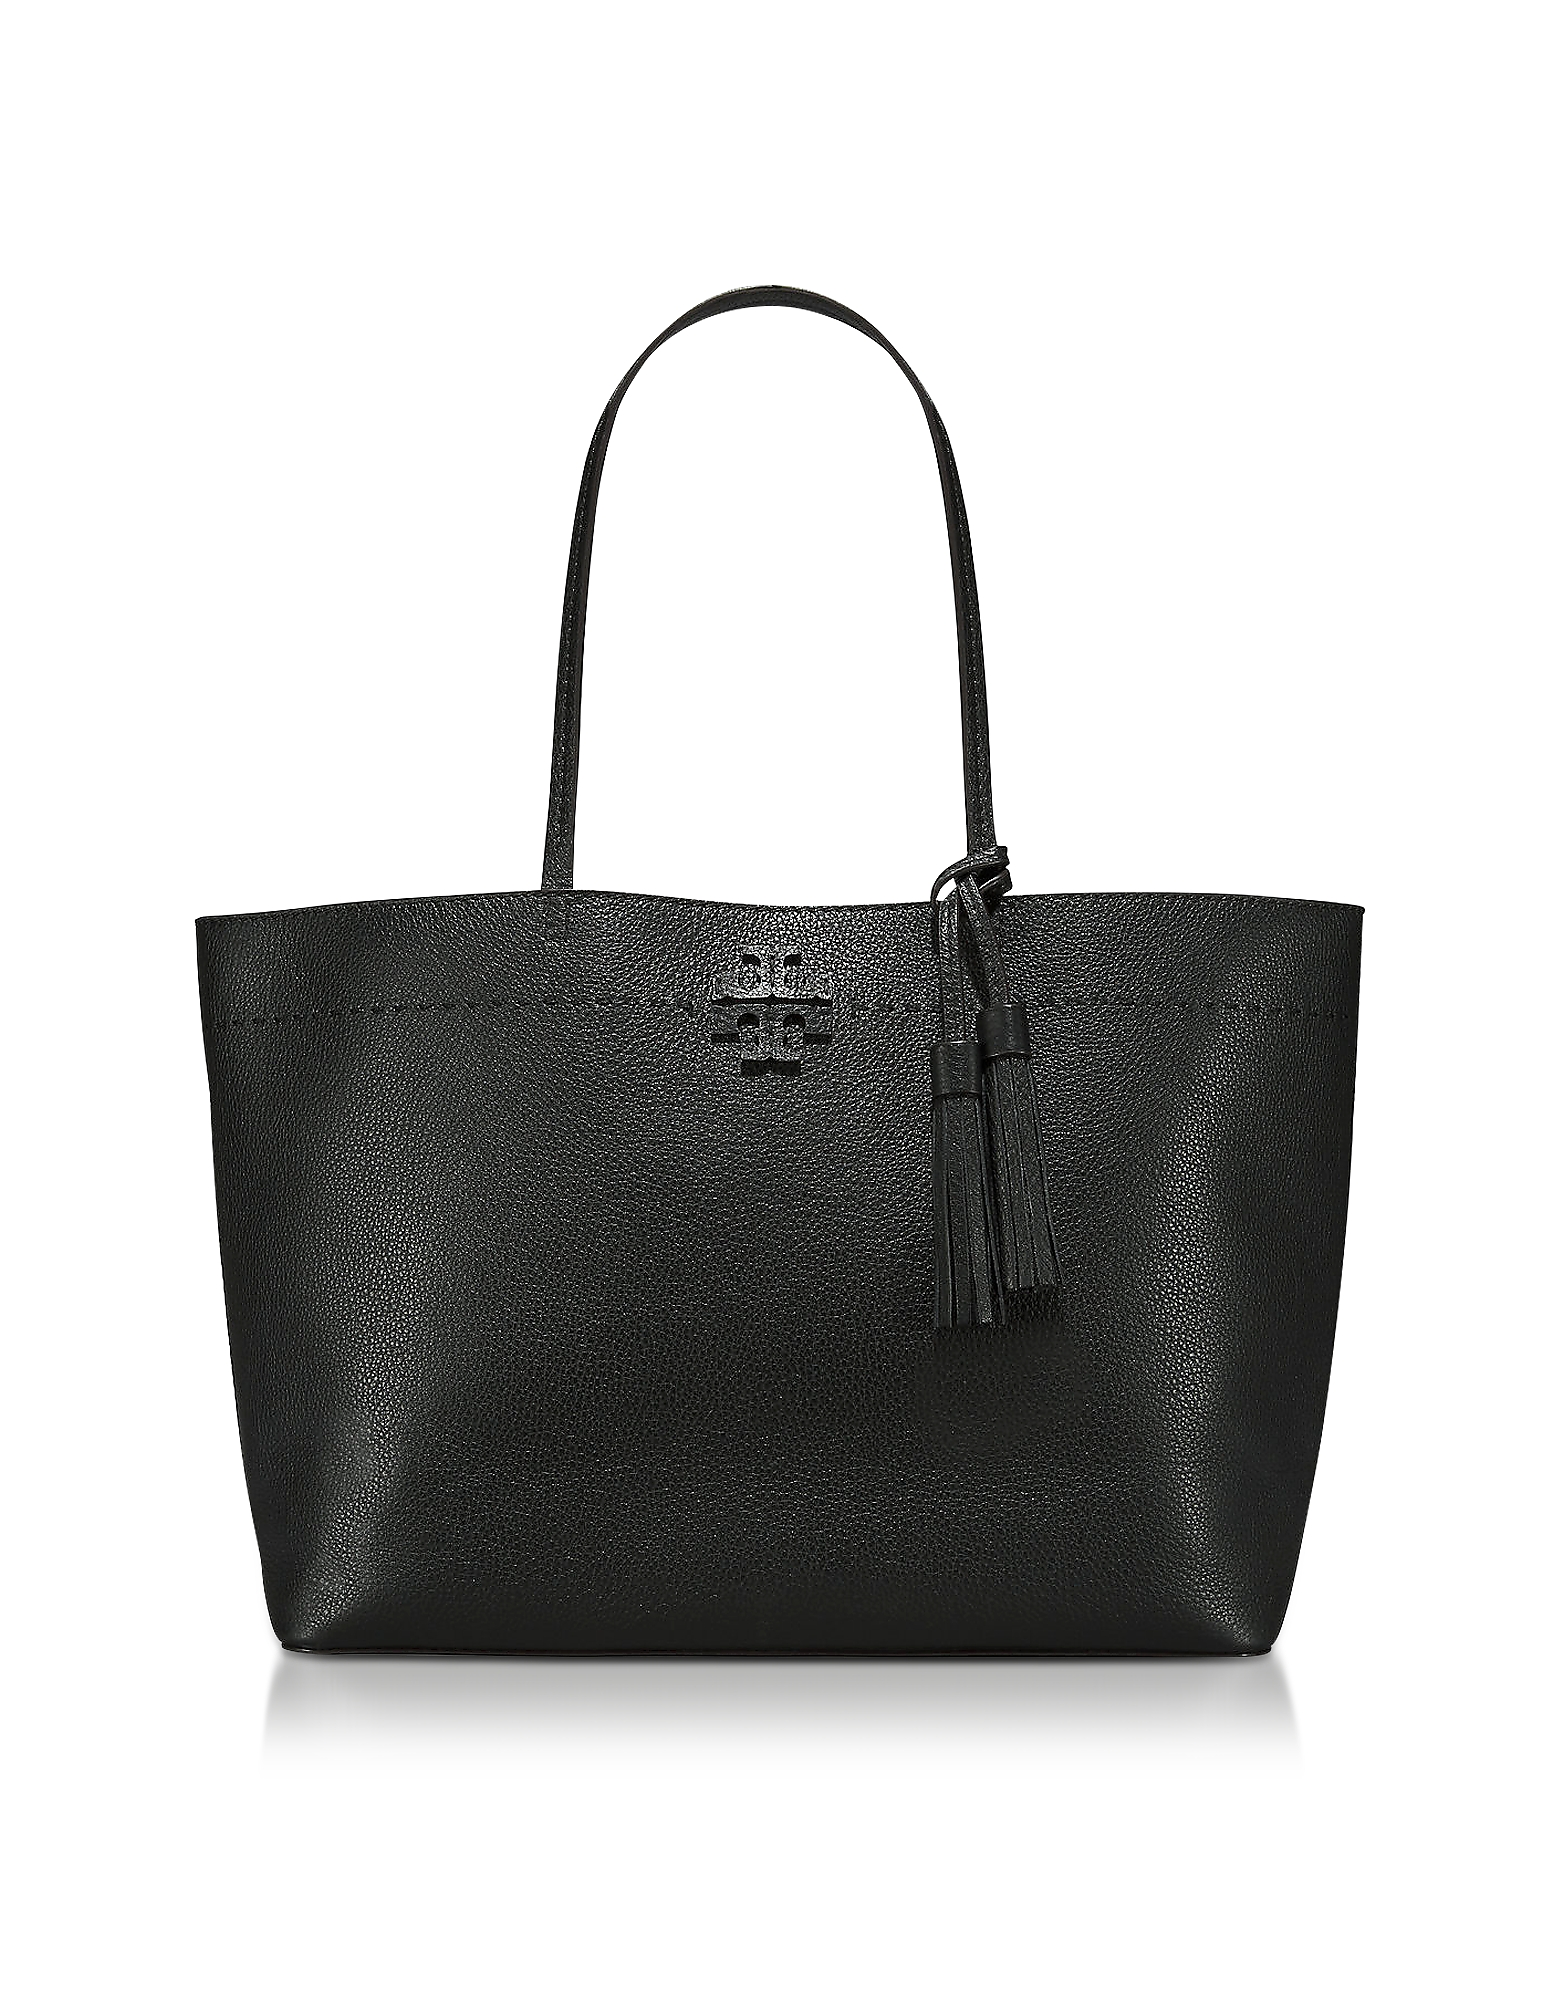 Mcgraw Black Textured Leather Tote Bag, Black/Navy